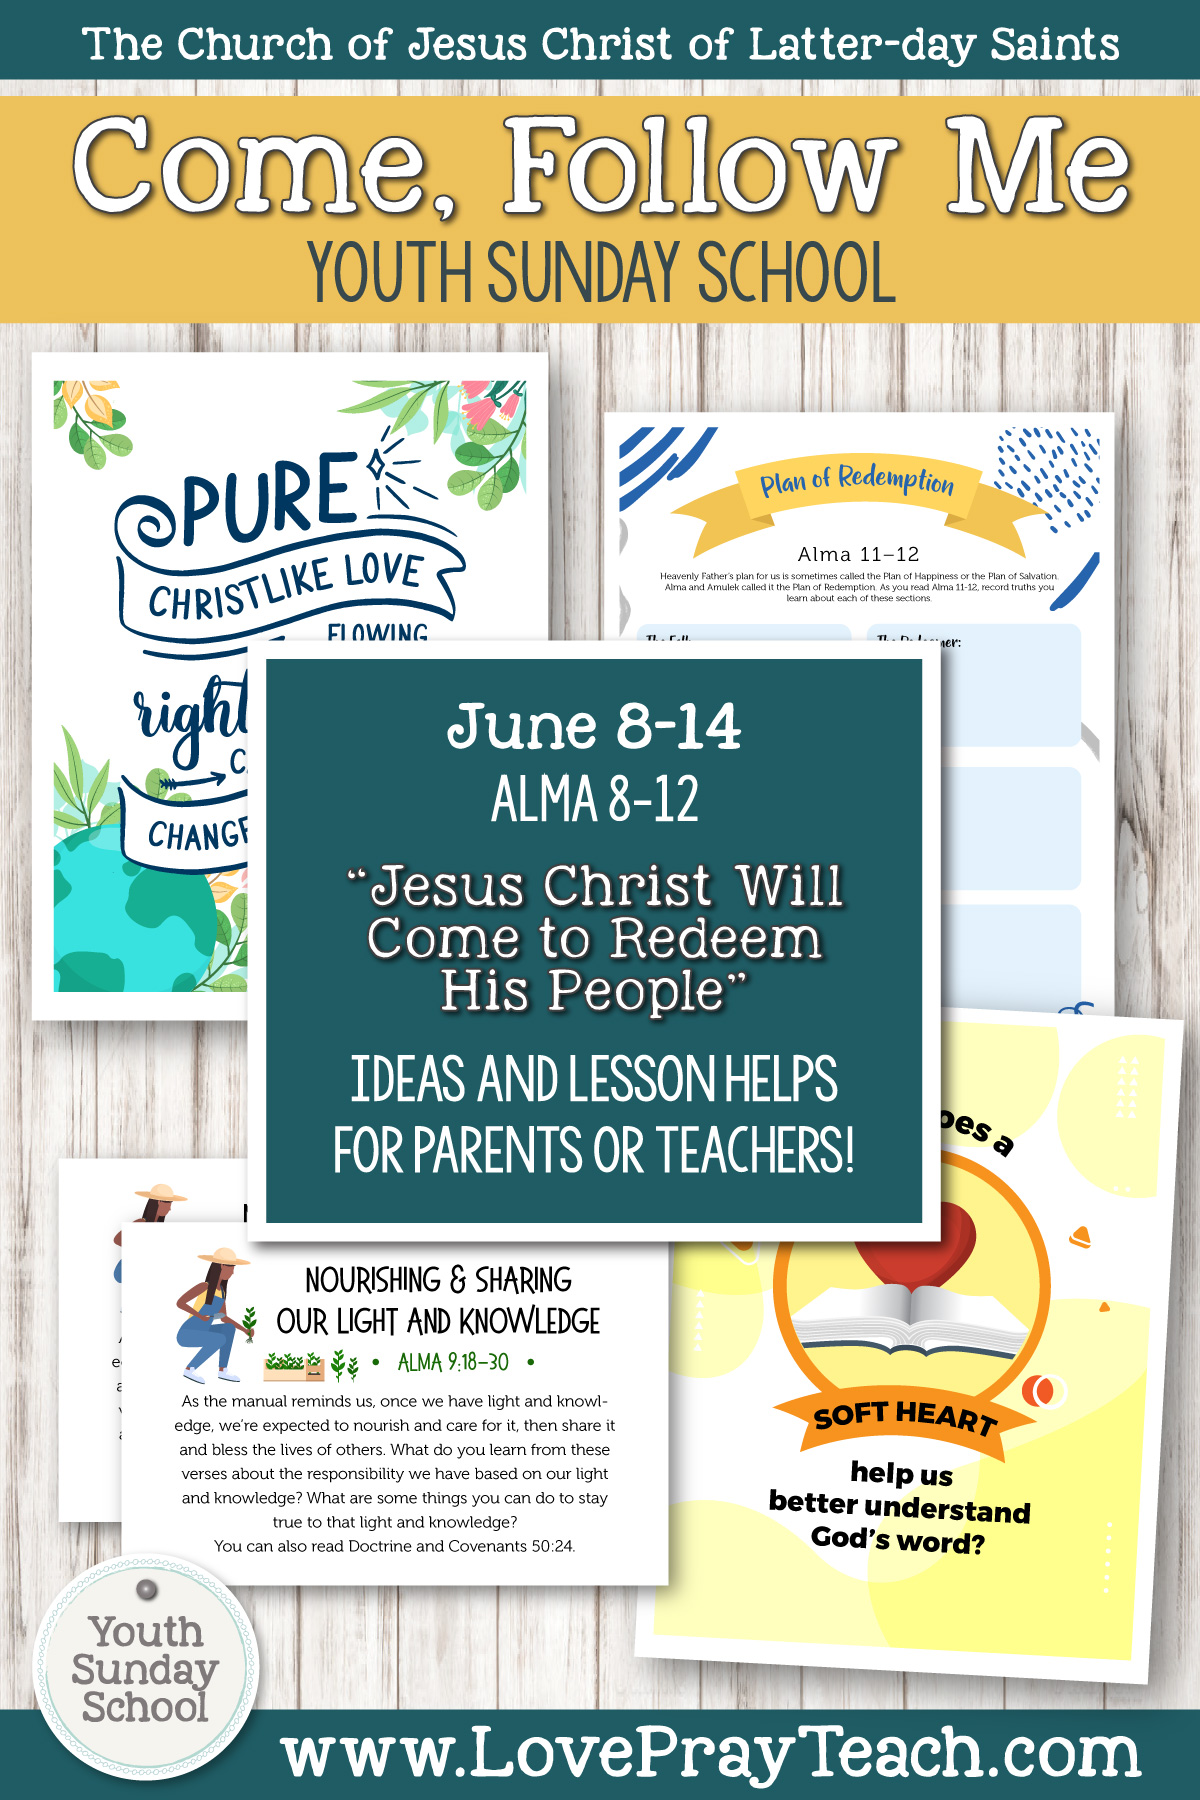 Youth Sunday School Come, Follow Me Book of Mormon 2020 June 8–14 Alma 8–12 Jesus Christ Will Come to Redeem His People Printable Lesson Packet for Latter-day Saints for Parents AND Teachers